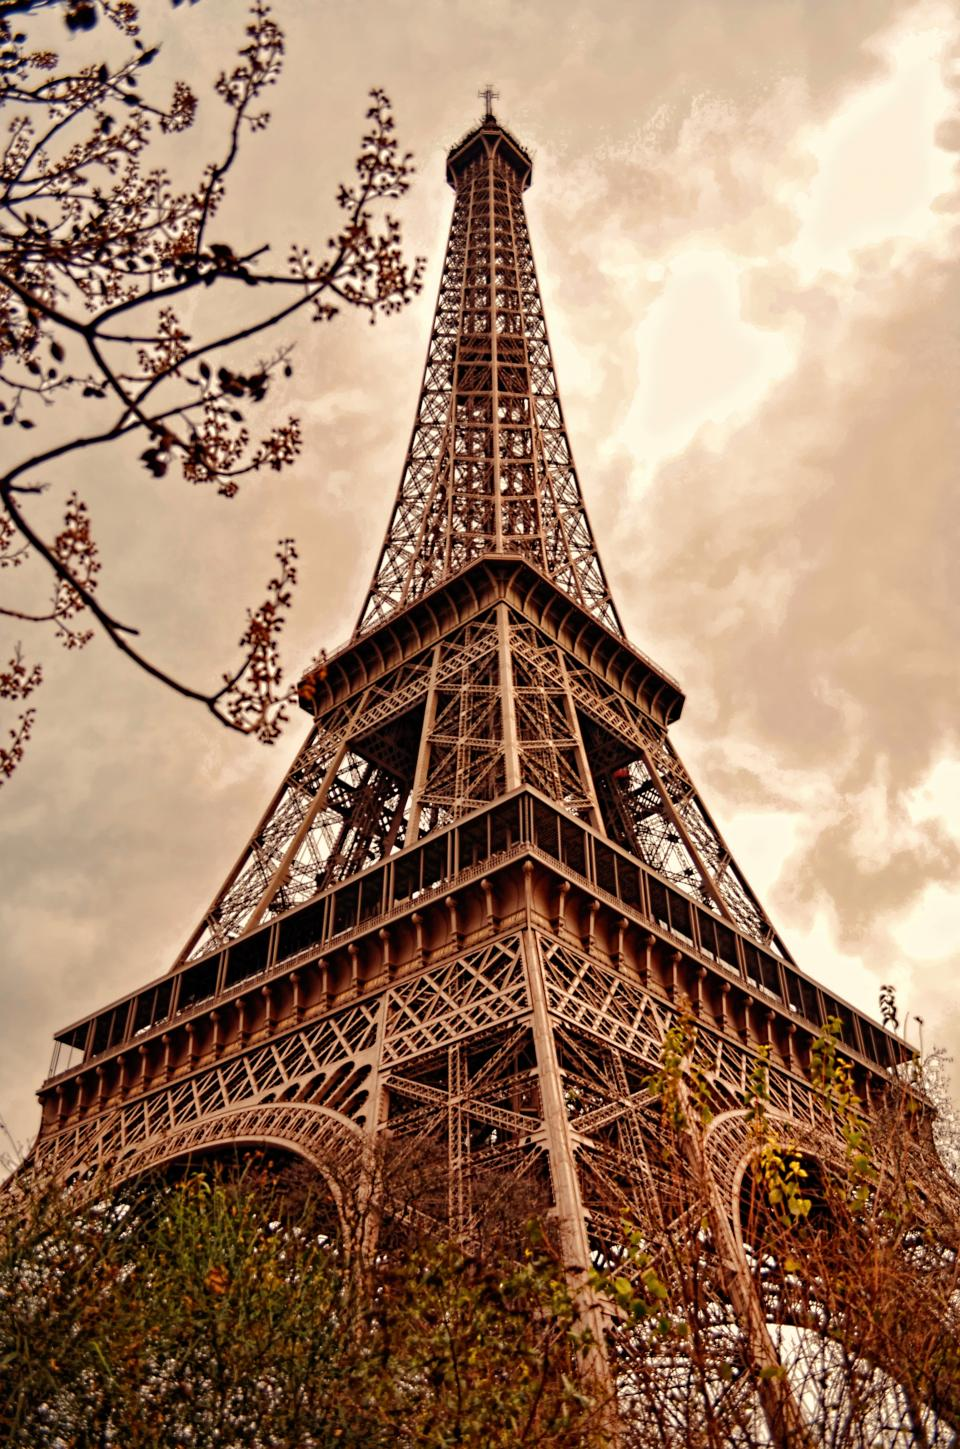 eiffel tower france historic landmark travel skyscraper city clouds sky plants outdoors view